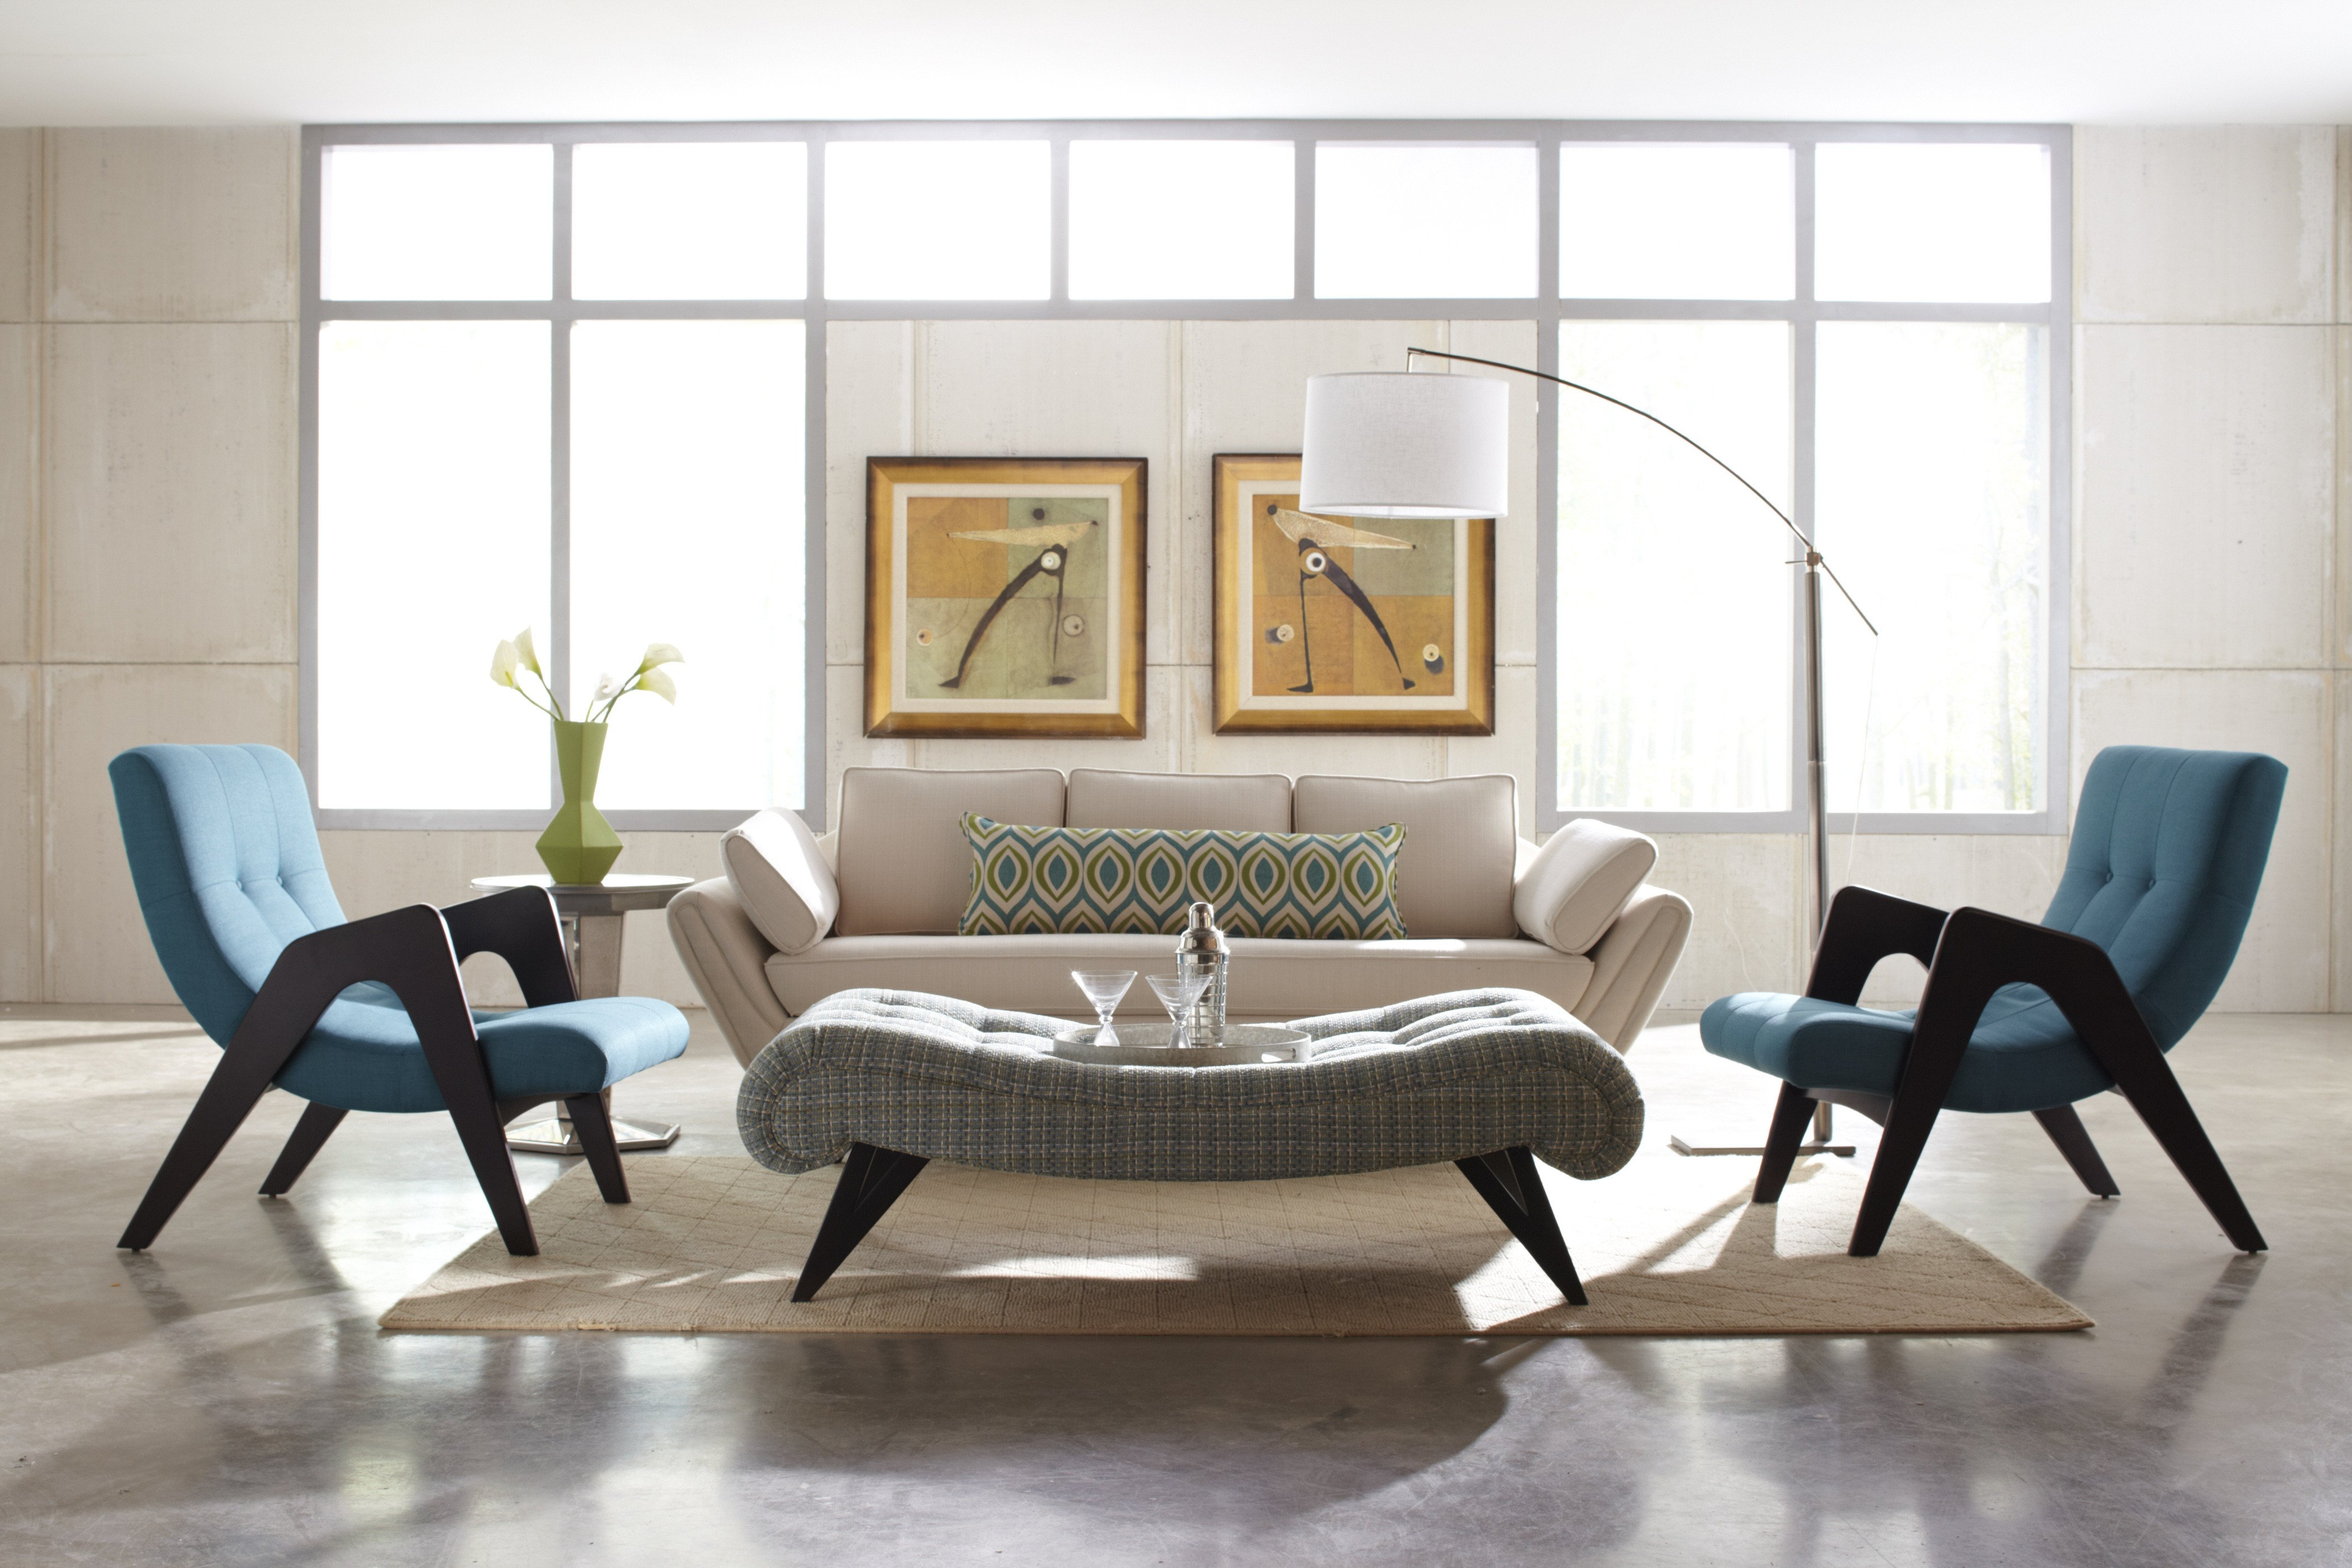 Contemporary Style Living Room Contemporary or Modern What's the Difference In Interior